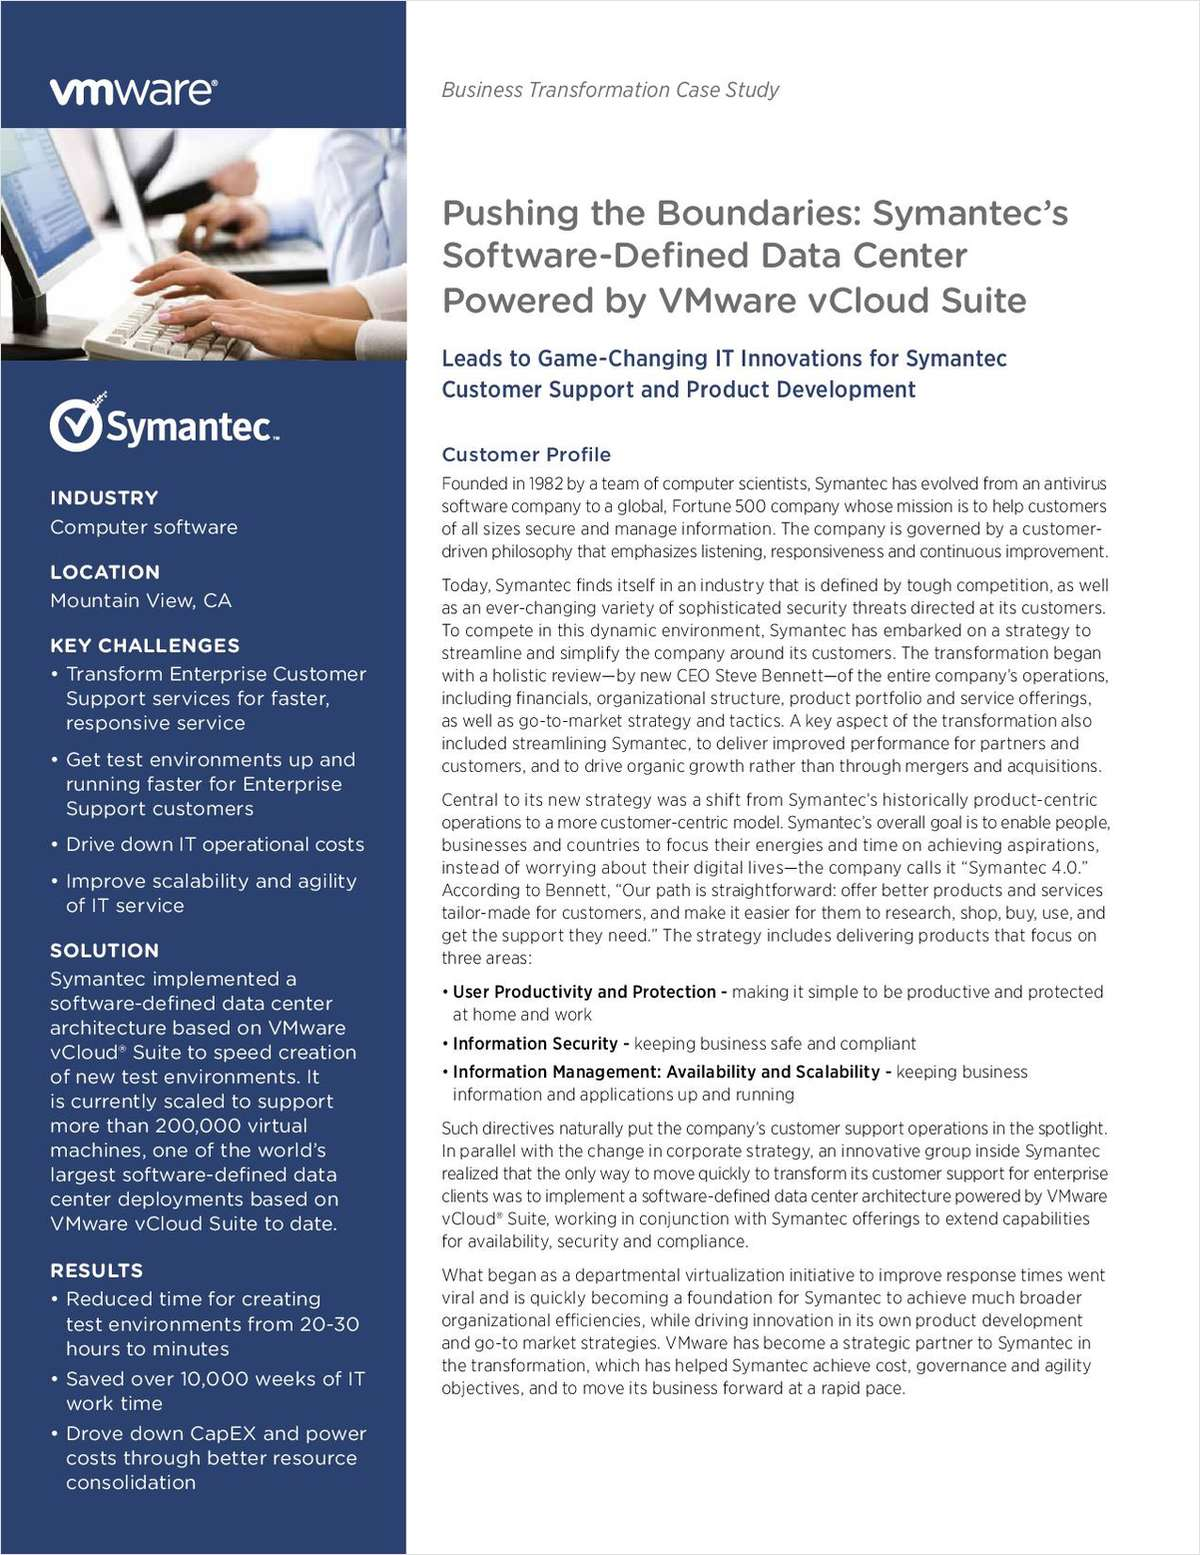 Pushing the Boundaries: Symantec's Software-Defined Data Center Powered by VMware vCloud Suite